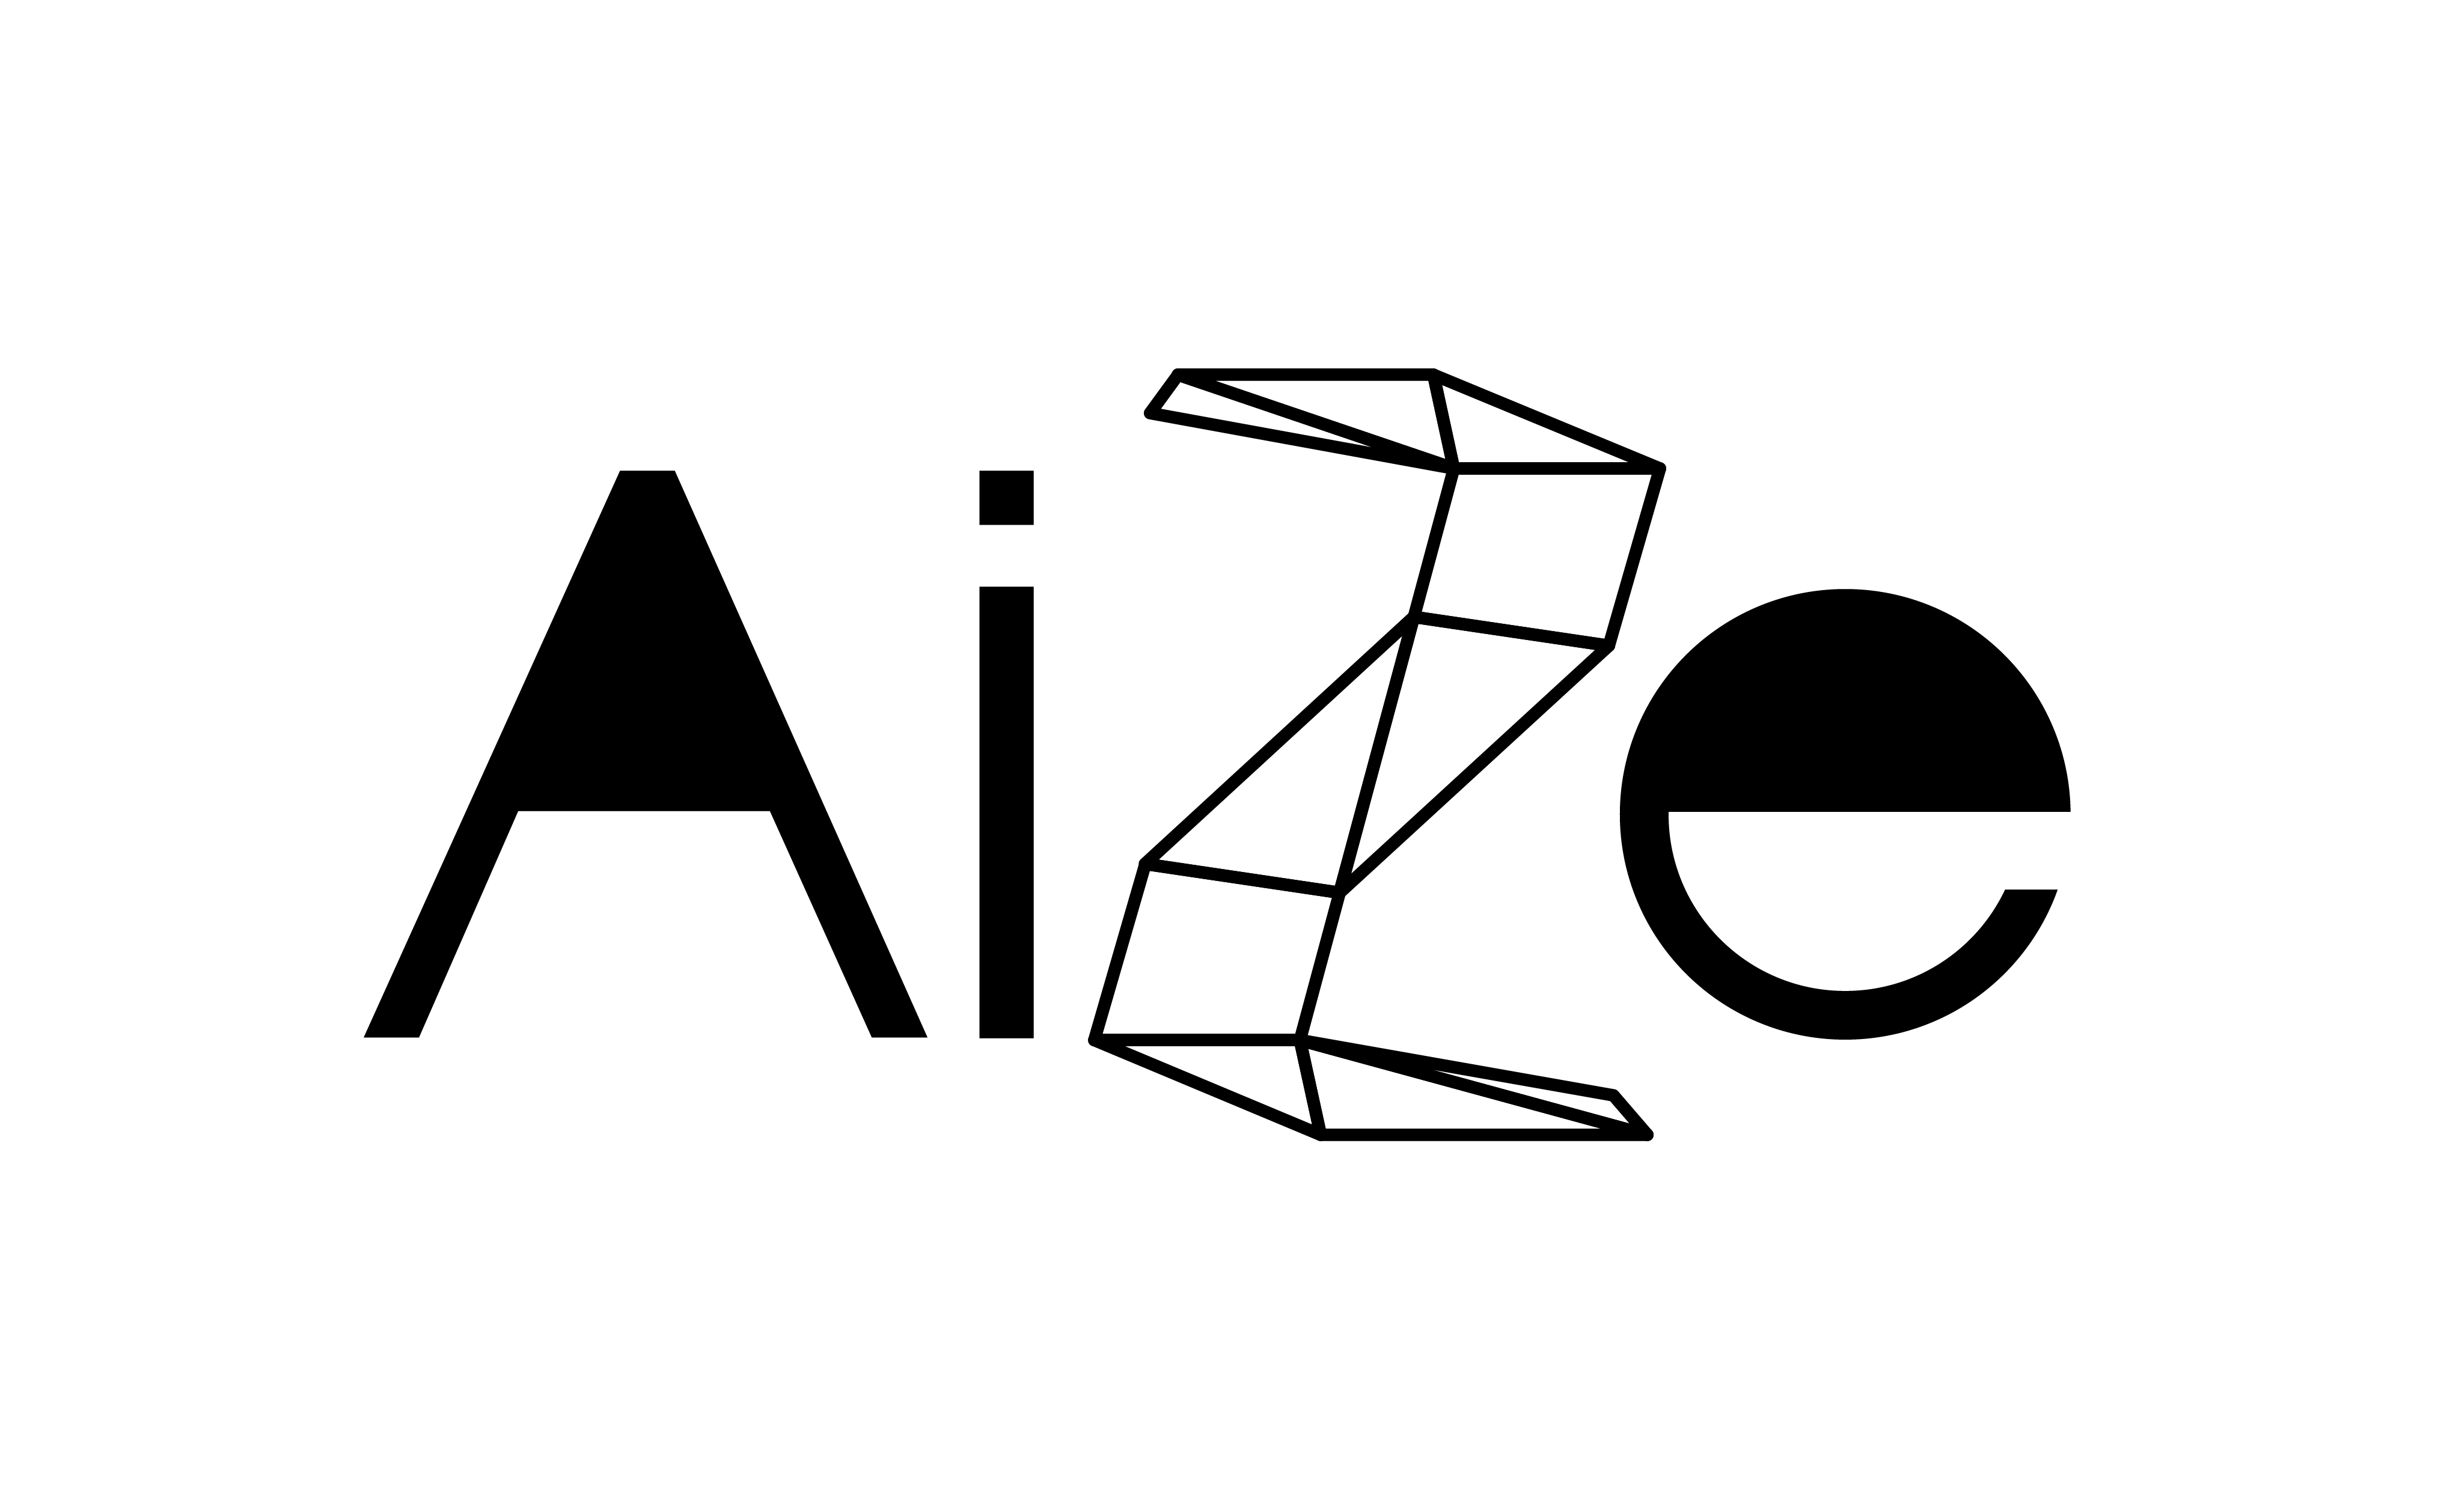 Aize